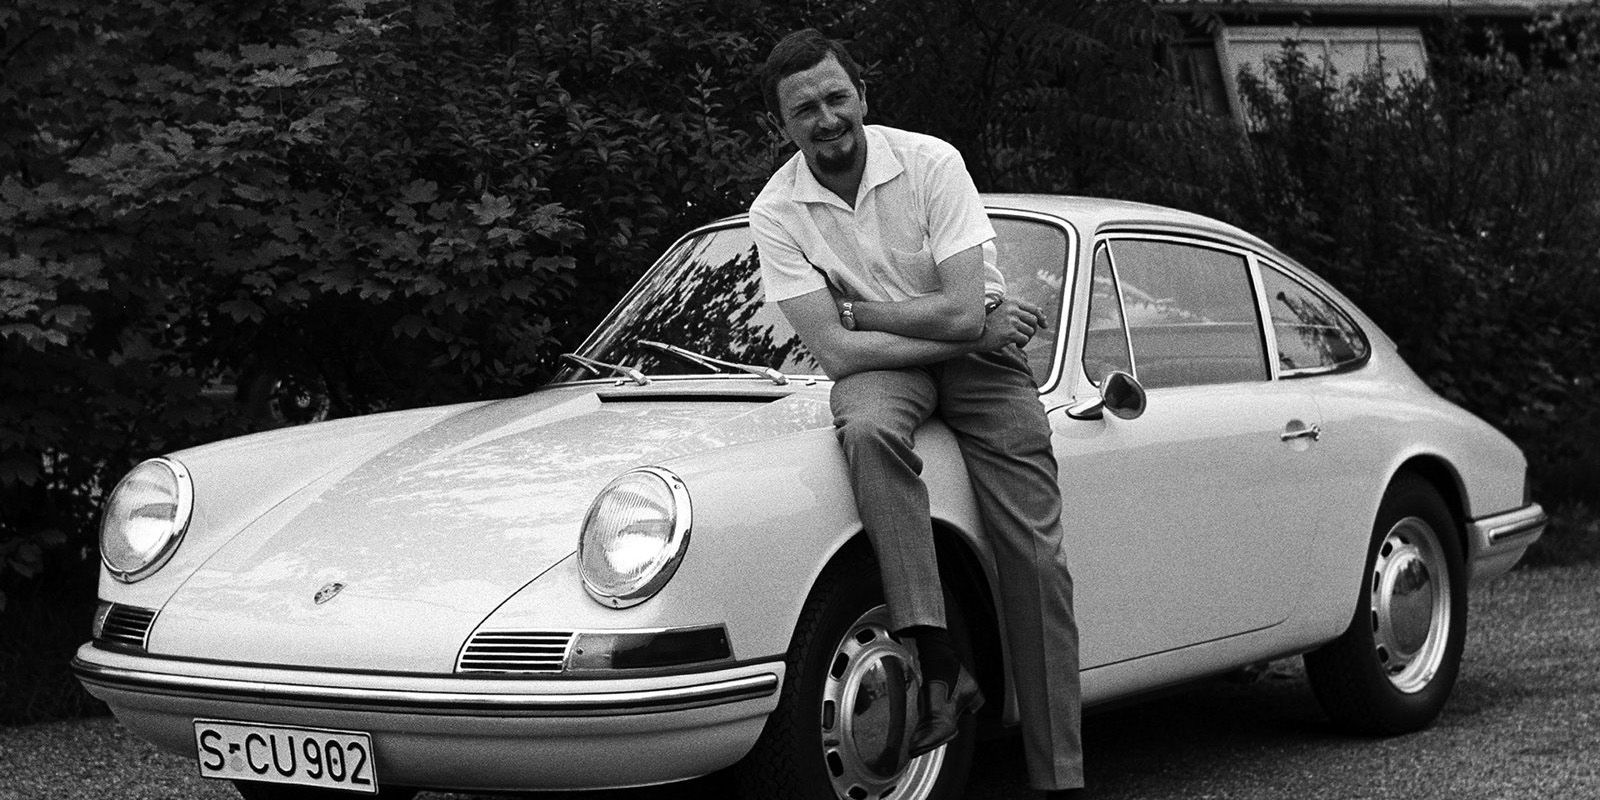 <p>The original 911 was based off the Porsche 356. Peugeot claimed the rights over the 901 moniker, so Porsche was forced to select another name for its 356 successor. The new car maintained the 356's fastback design, and utilized an air-cooled flat-six that produced 128 bhp.</p>